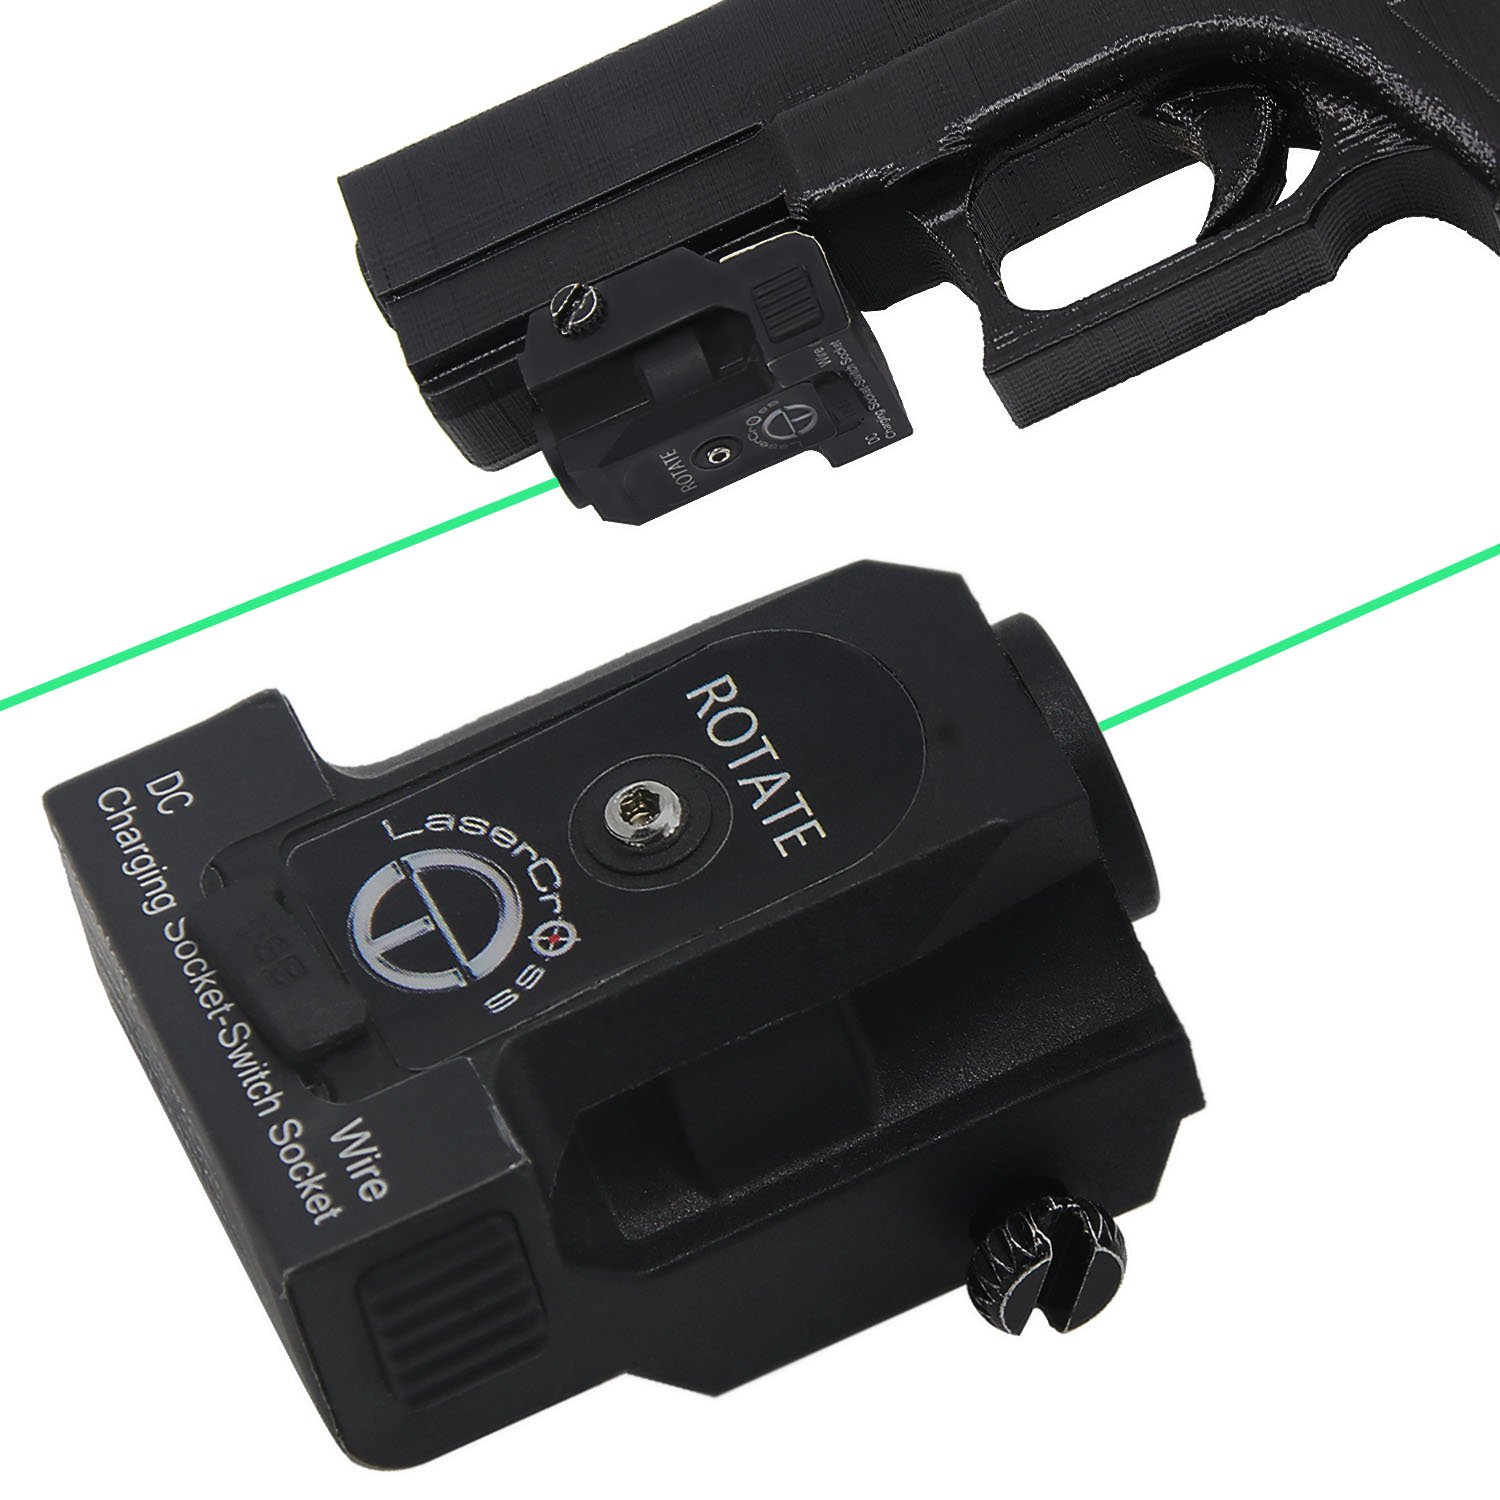 Lasercross Green Dot Laser Sight, Portable Compact Sight with 20mm Rail Picatinny On/Off Switch for Rifle Handgun Pistol Airsoft Air Soft Optic